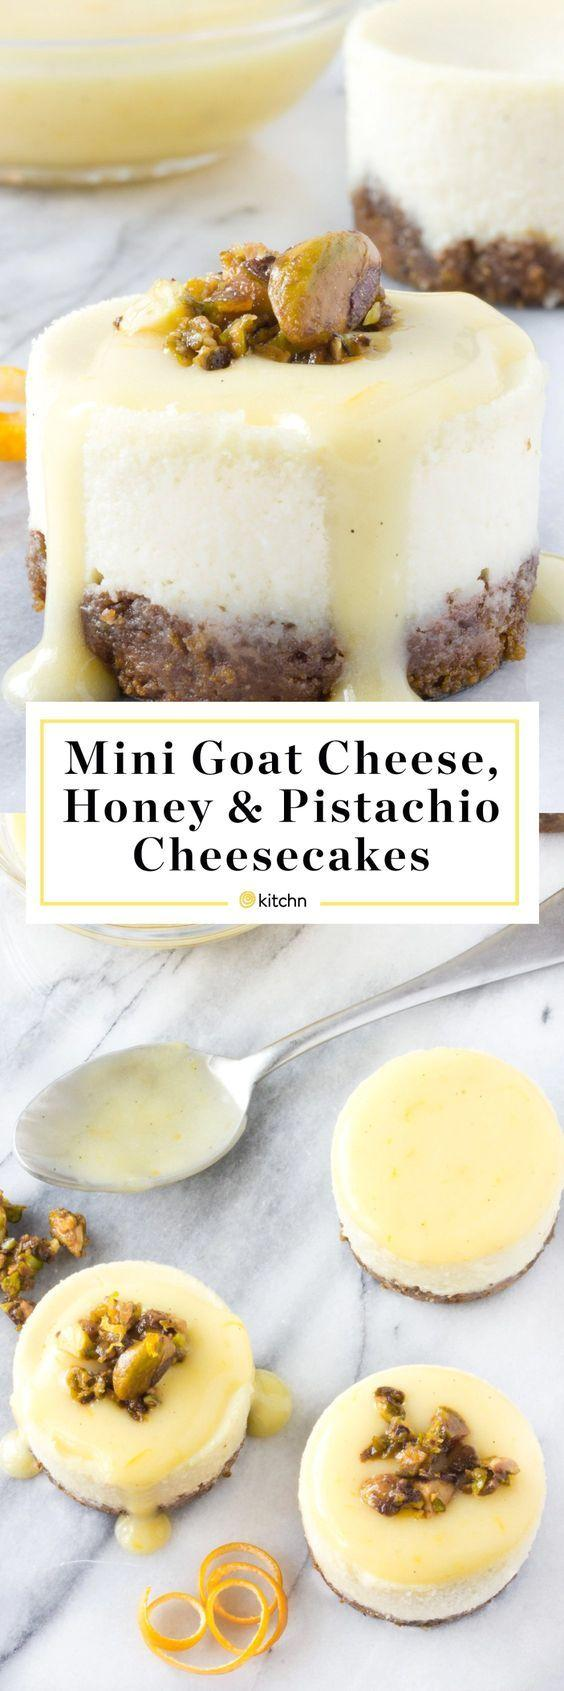 Wedding - Goat Cheese, Honey & Pistachio Mini Cheesecakes With Meyer Lemon Cream